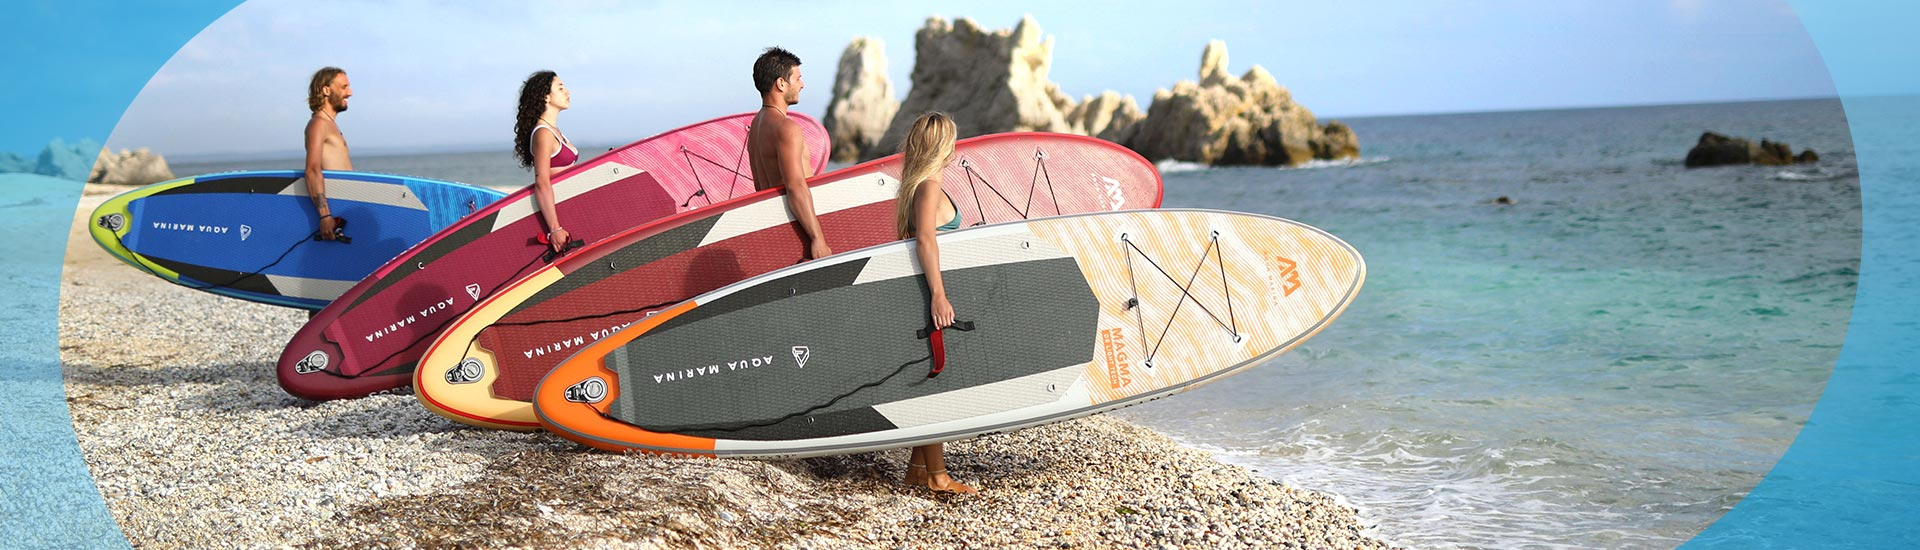 Stand-Up Paddle Board – buy inflatable SUP online   watersport.eu